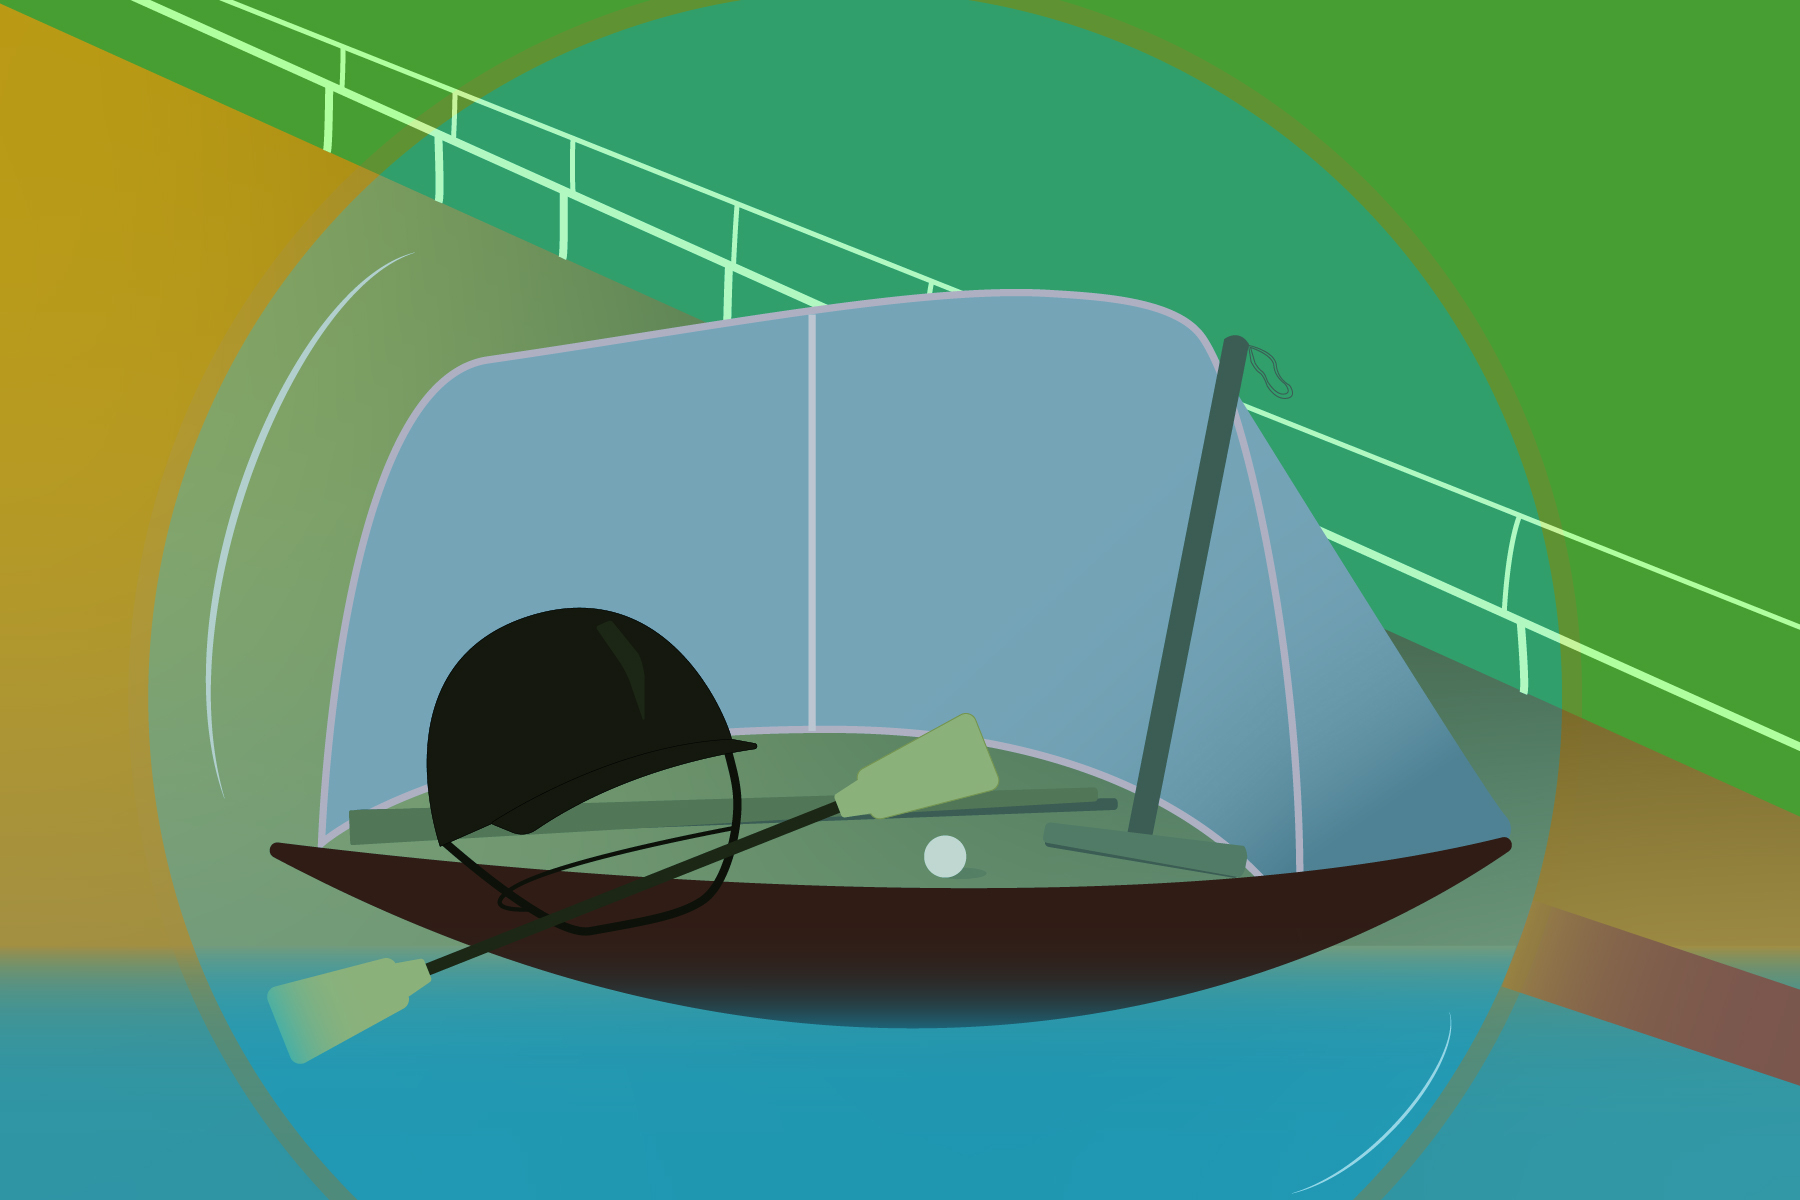 illustration of sporting equipment in a bubble for an article about overlooked sports